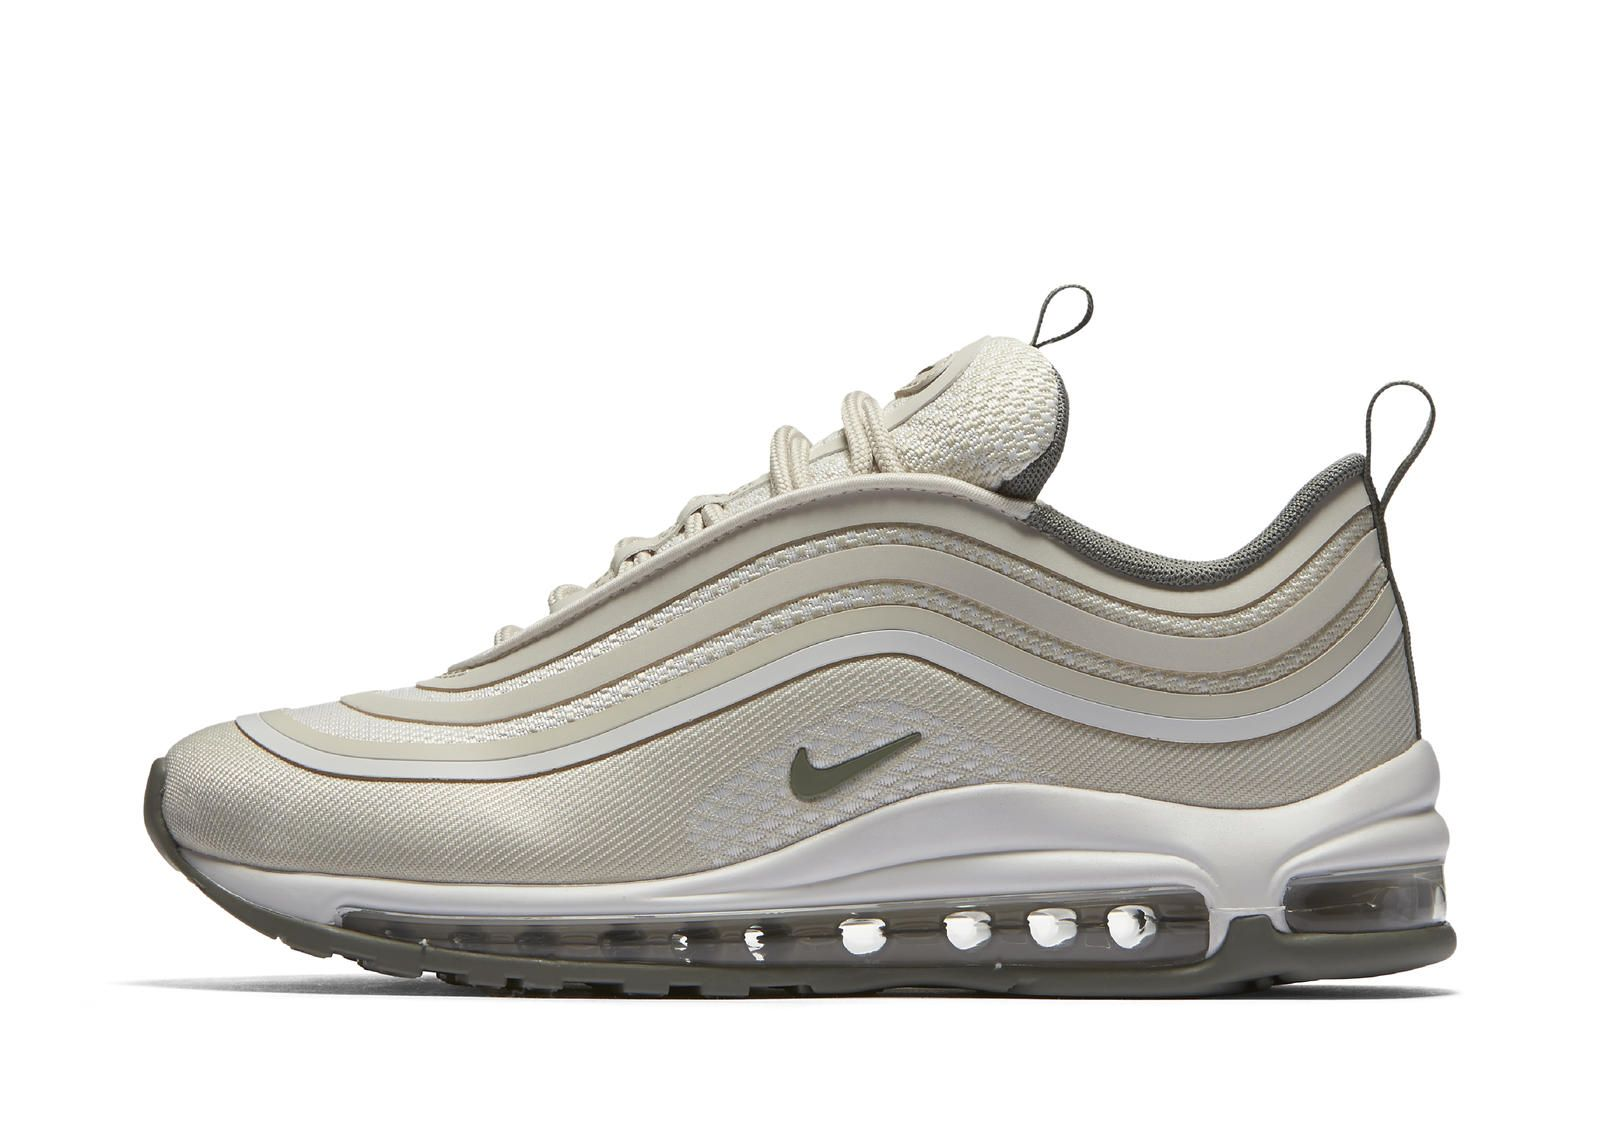 New Fall Colorways for the Air Max 97